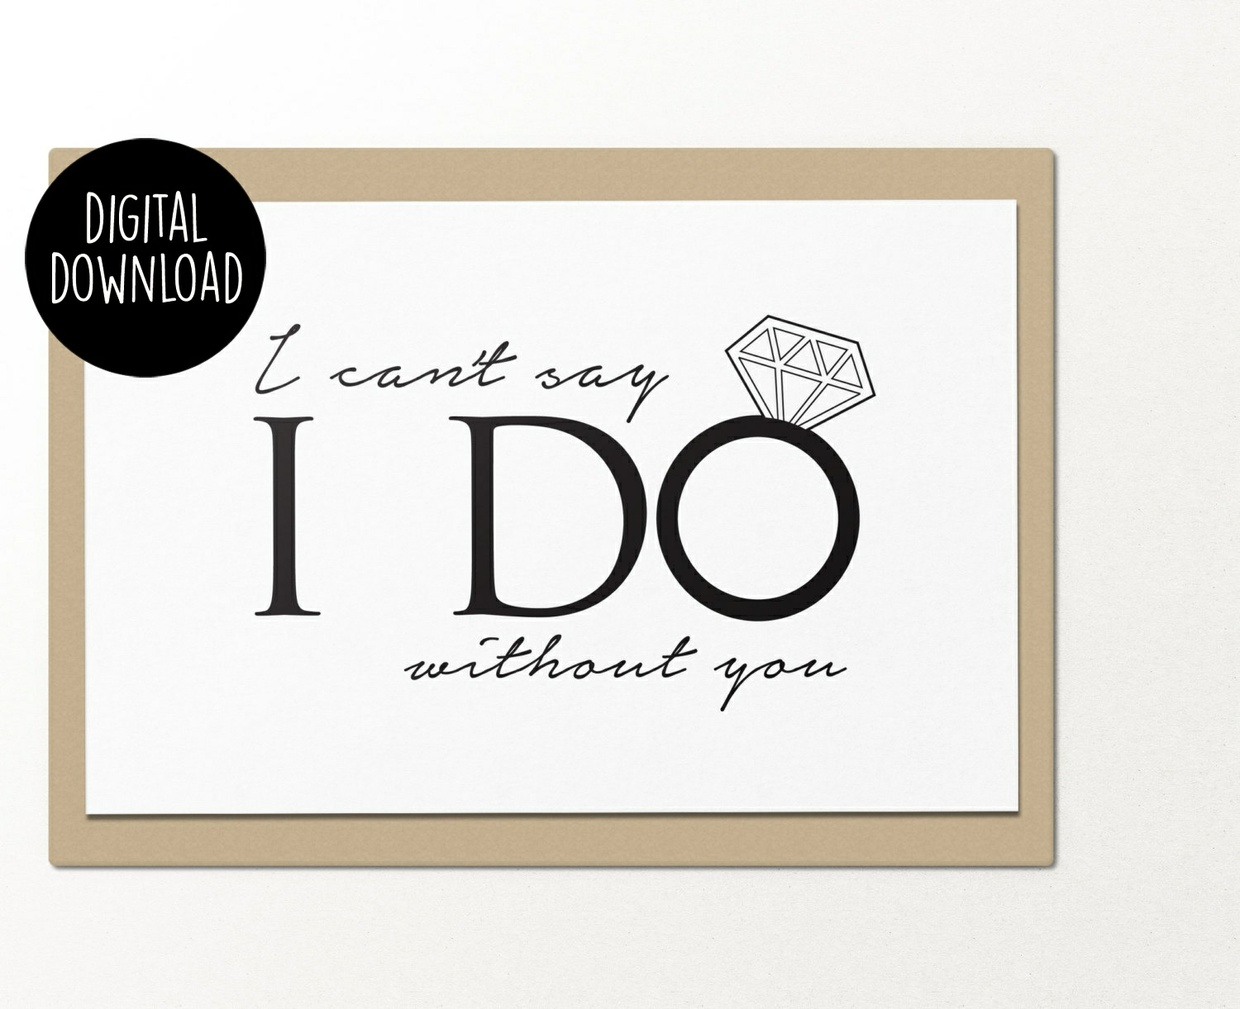 I can't say I do without you printable greeting card